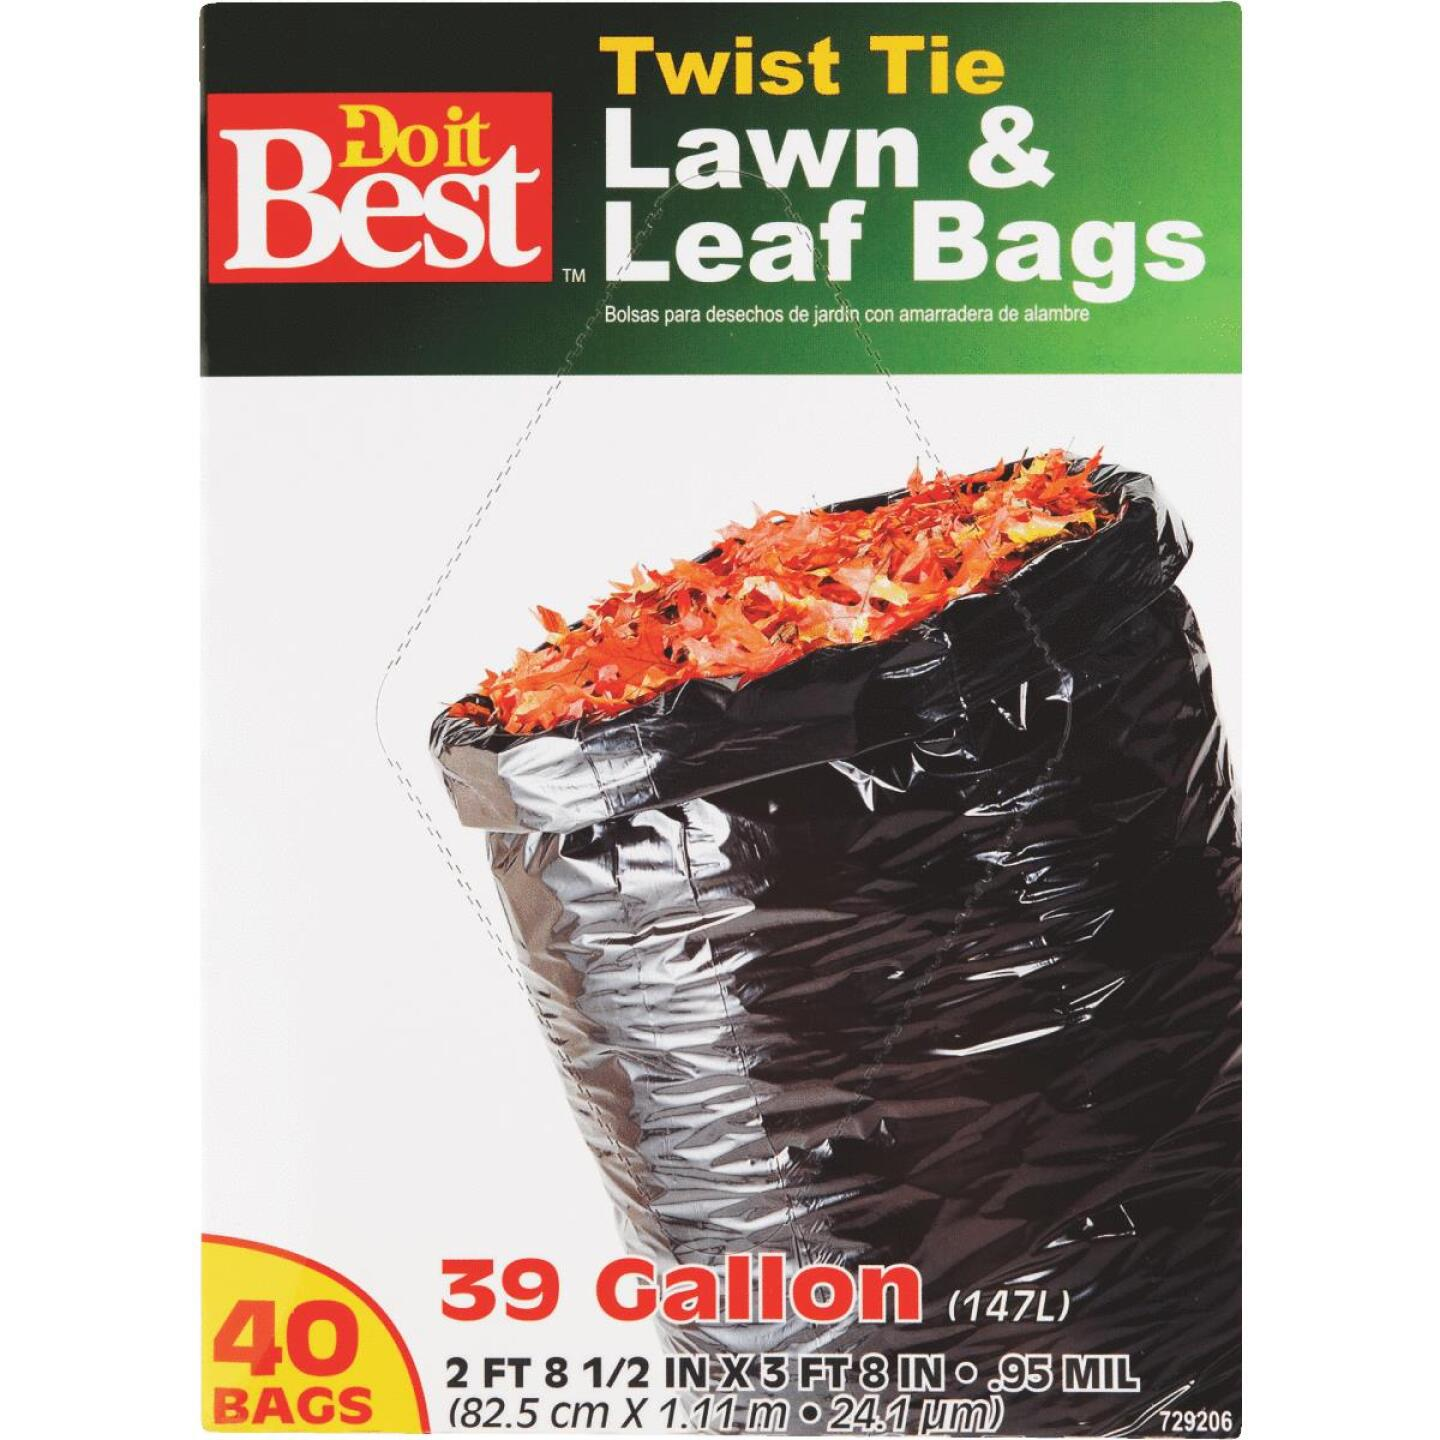 Do it Best 39 Gal. Black Flap Tie Lawn & Leaf Bag (40-Count) Image 4